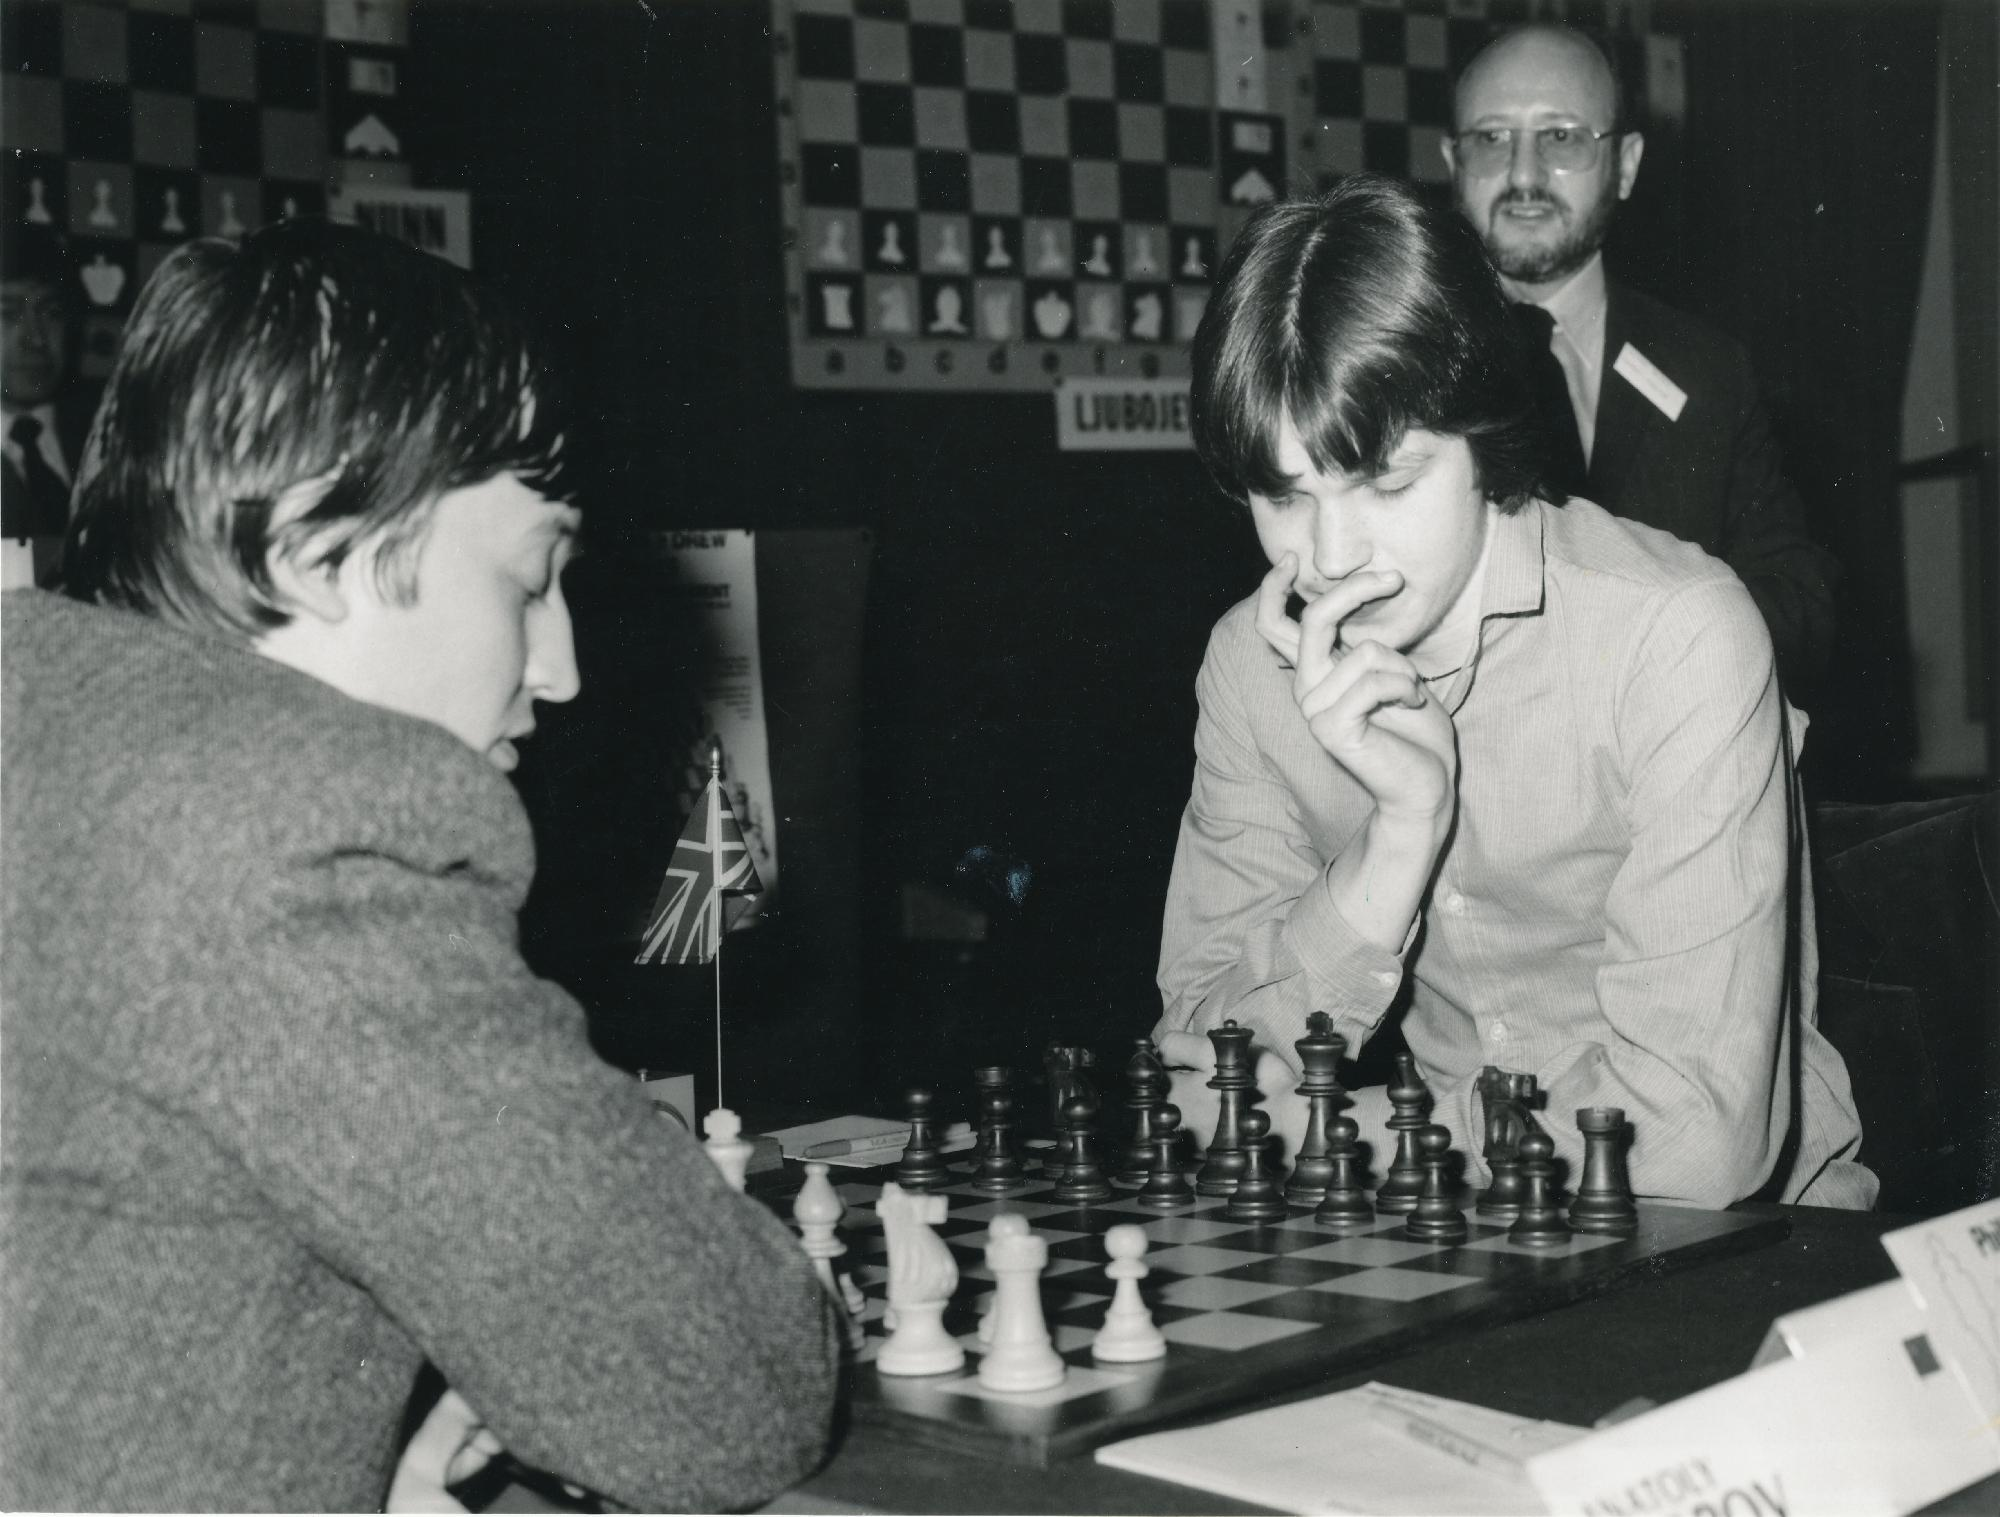 Anatoly Karpov plays Nigel Short, London, Philips & Drew, French Winawer, 1/2-1/2, Stewart Reuben looking on